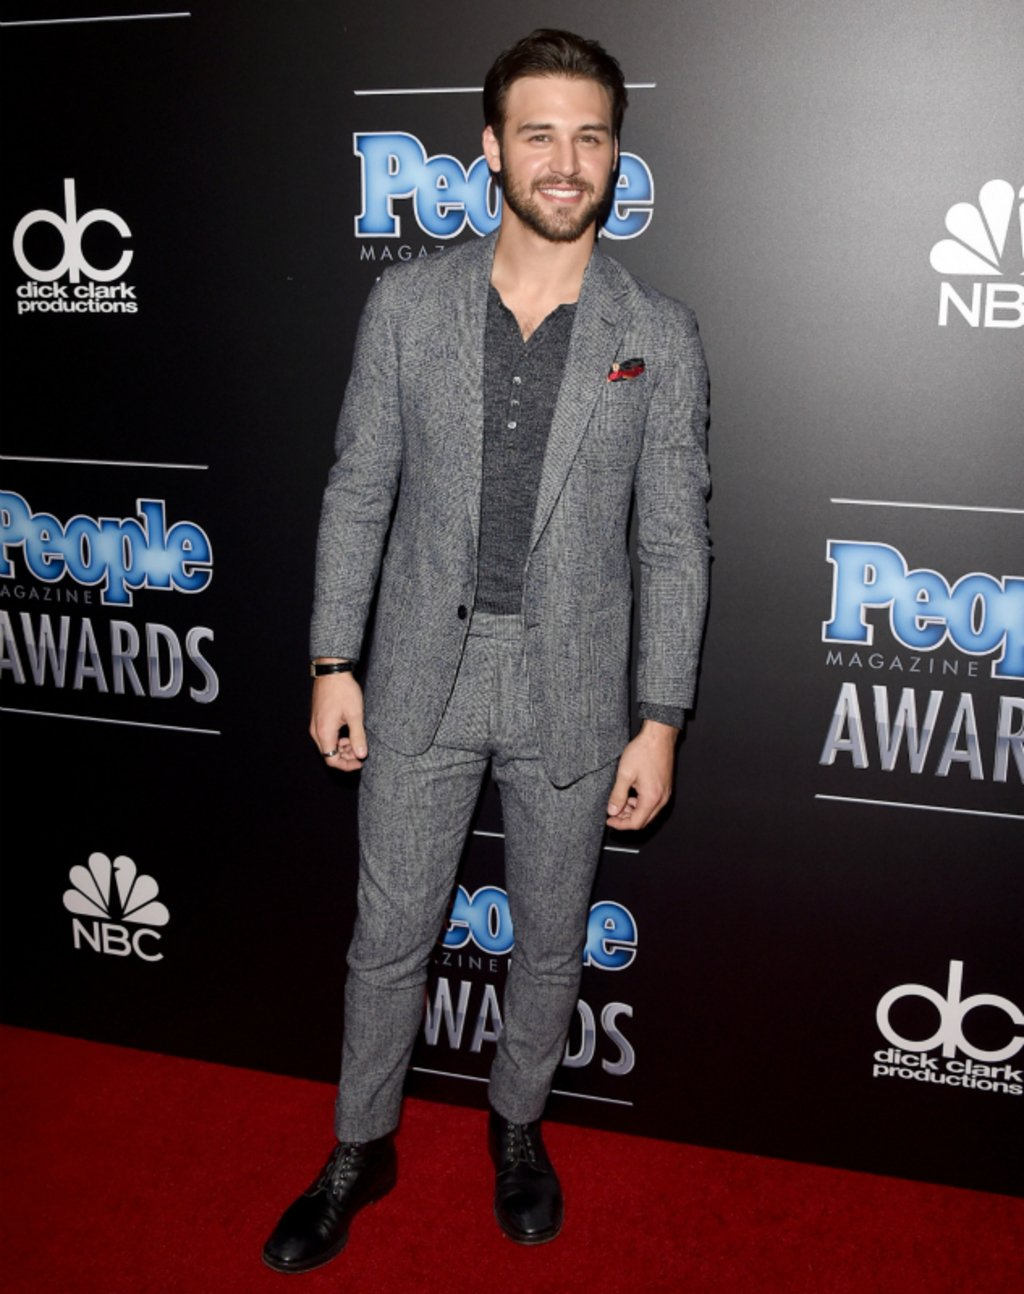 Ryan Guzman is notably the best dressed man at the People's Awards